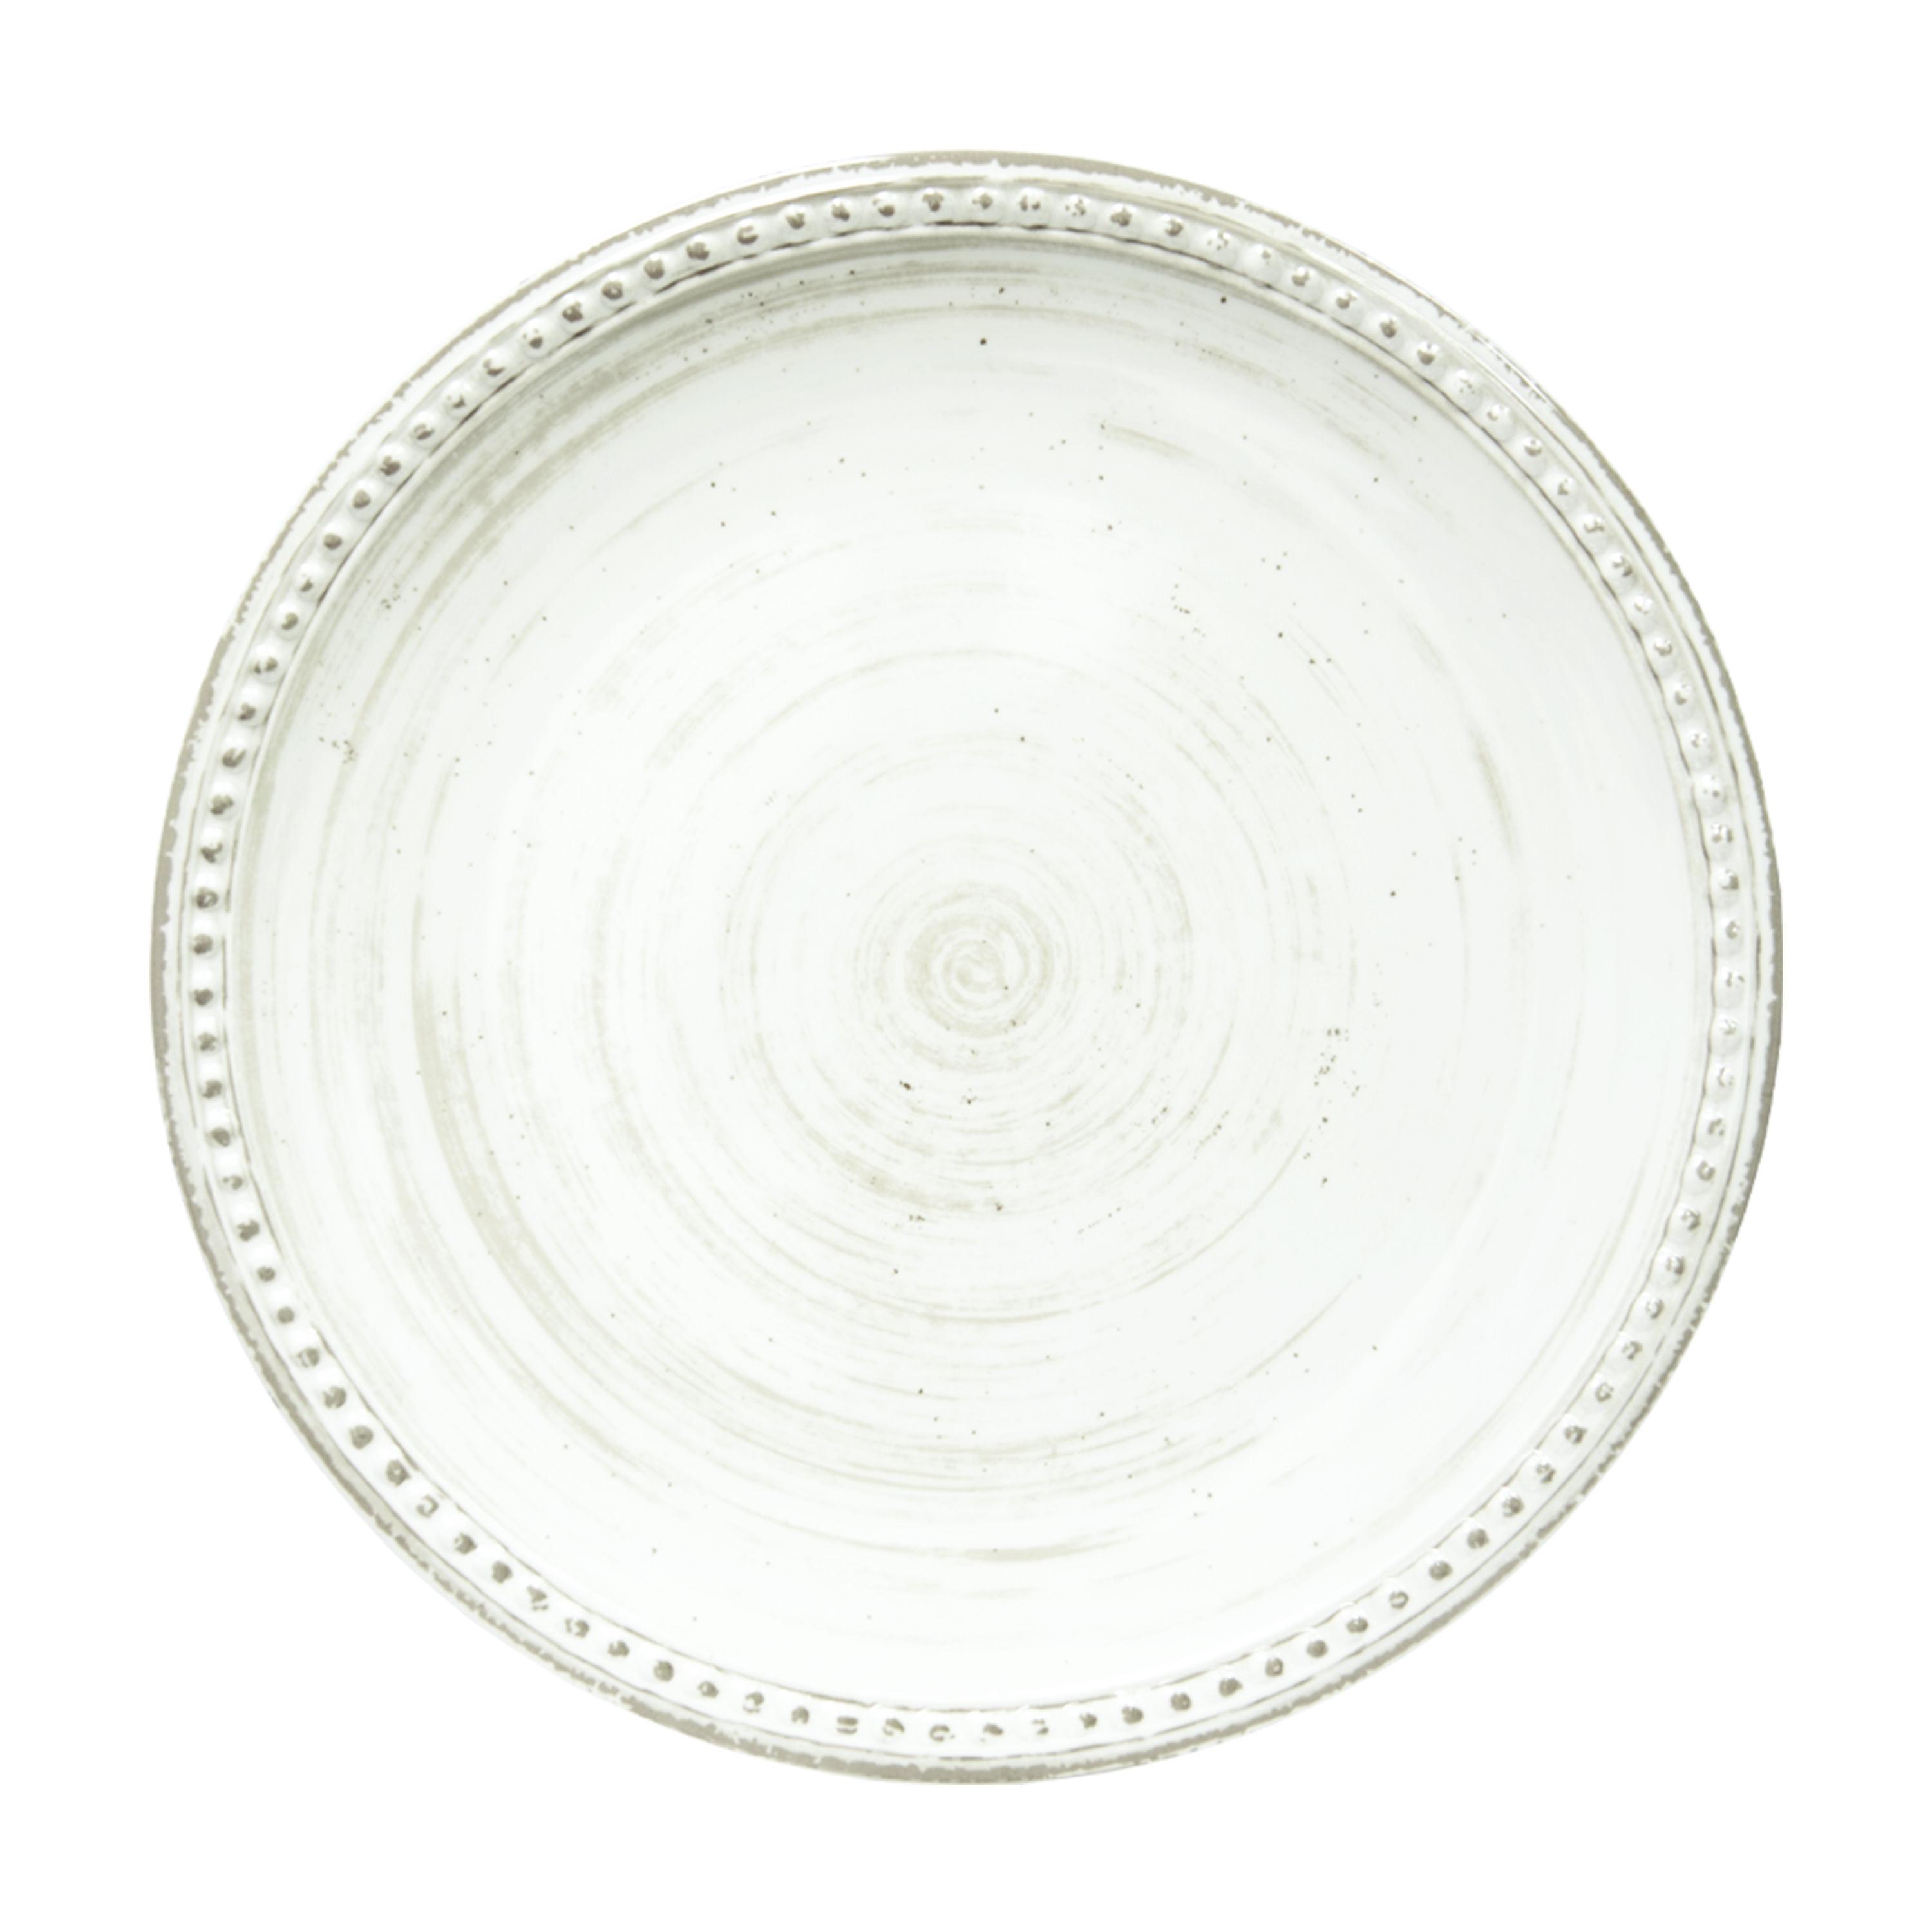 French Country Plate & Bowl Sets, White, 12-piece set slideshow image 6